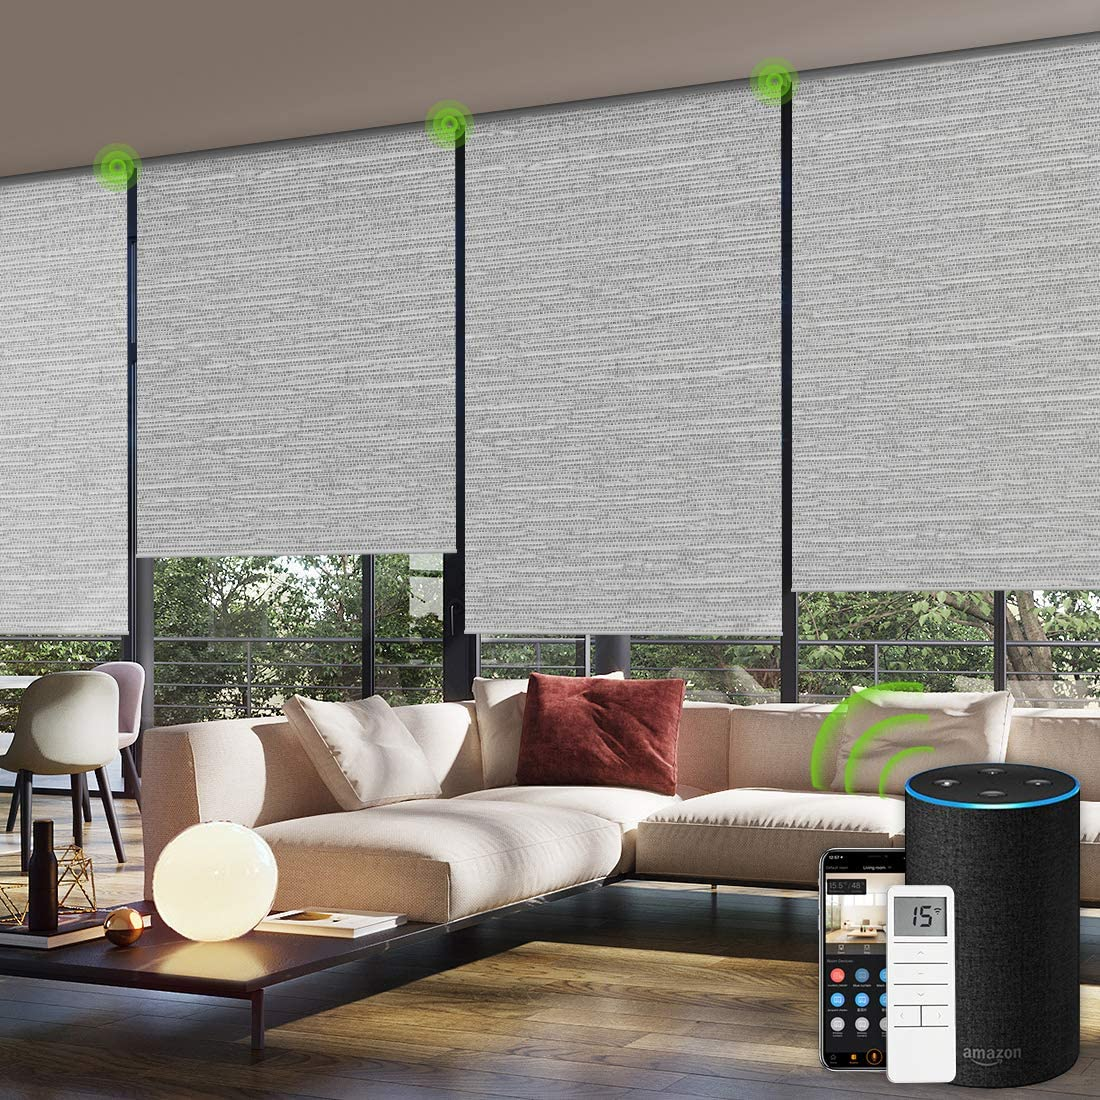 Yoolax Motorized Blinds Remote Control Auto Blinds Blackout Motorized Roller Shade with Valance Customized (Foggy Grey)